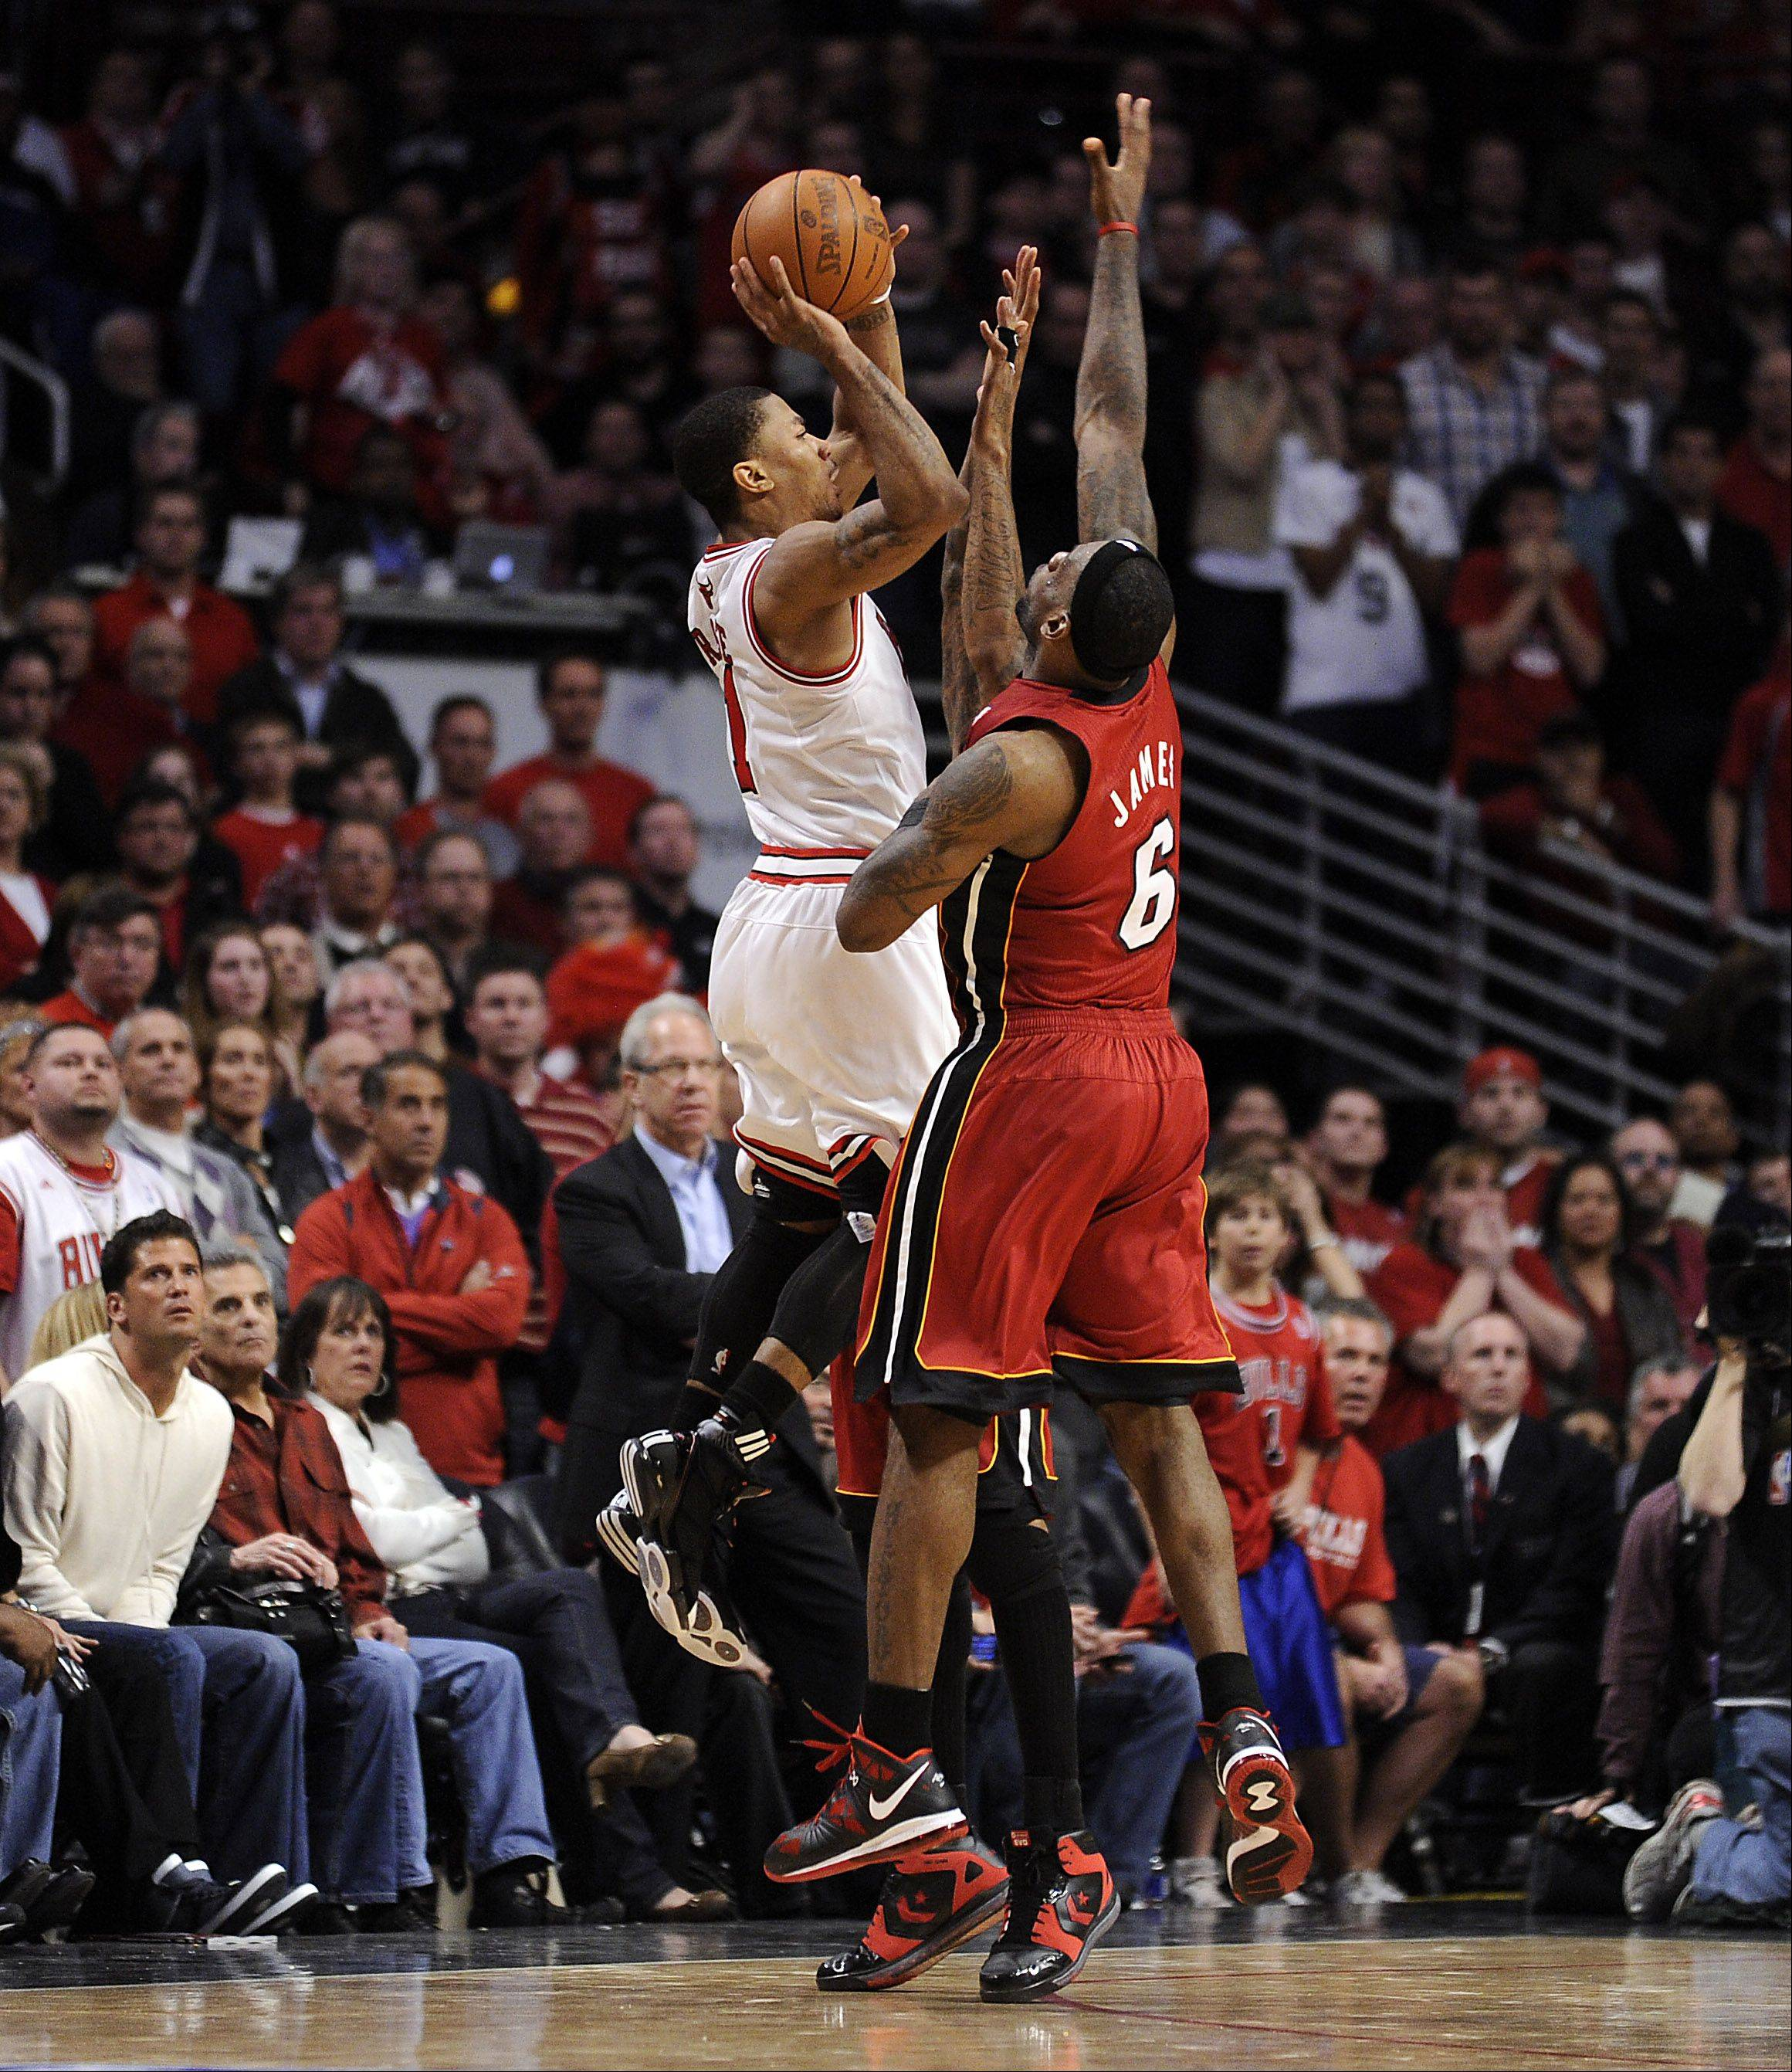 Bulls guard Derrick Rose takes a last-second shot but the Heat's LeBron James blocks it, ending the season for the Bulls at the United Center on Thursday.